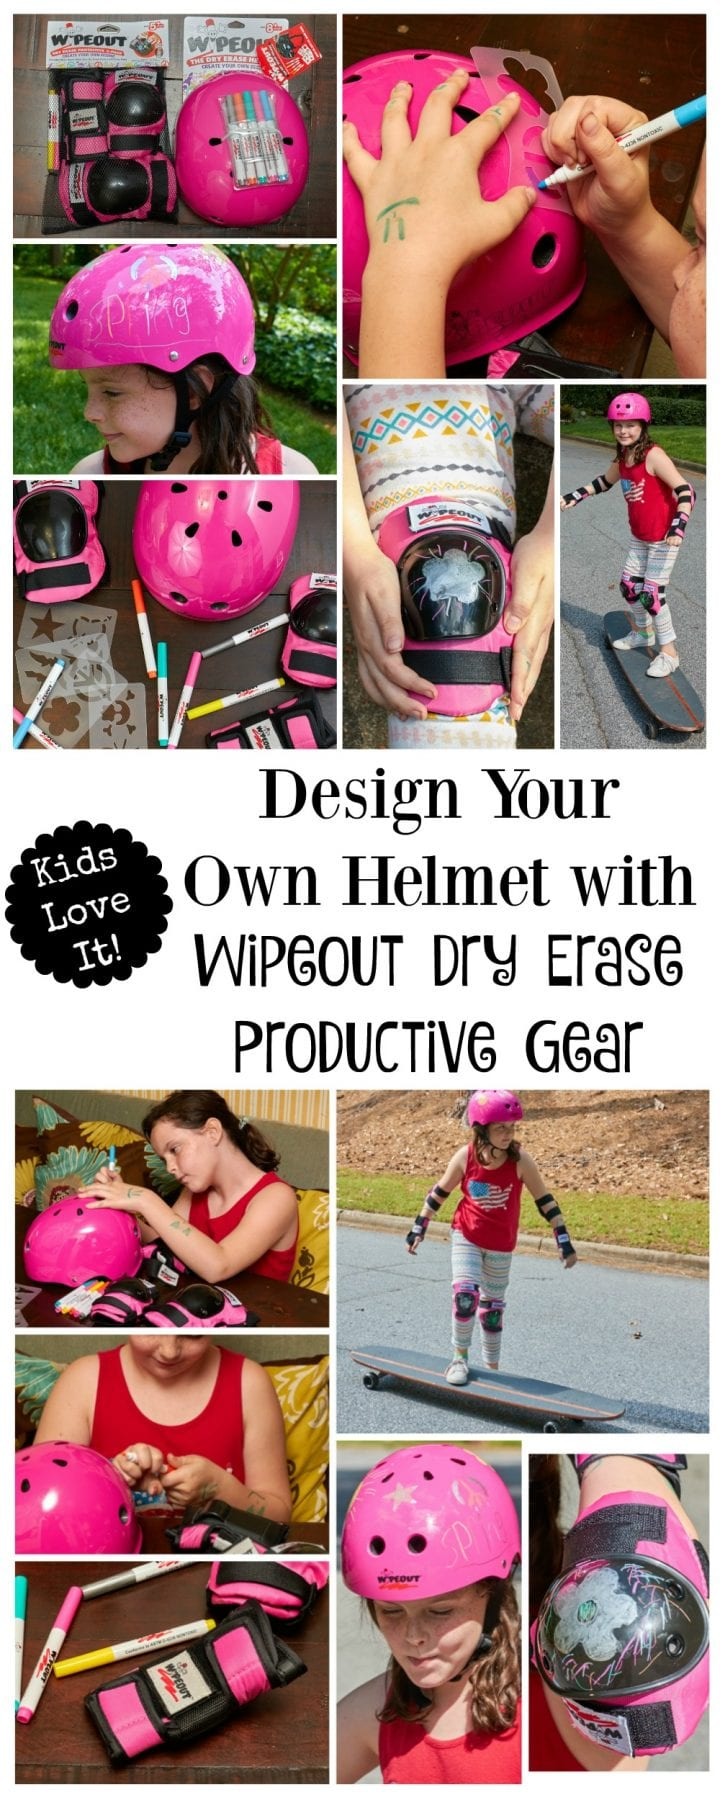 Design Your Own Helmet with Wipeout Dry Erase Productive Gear